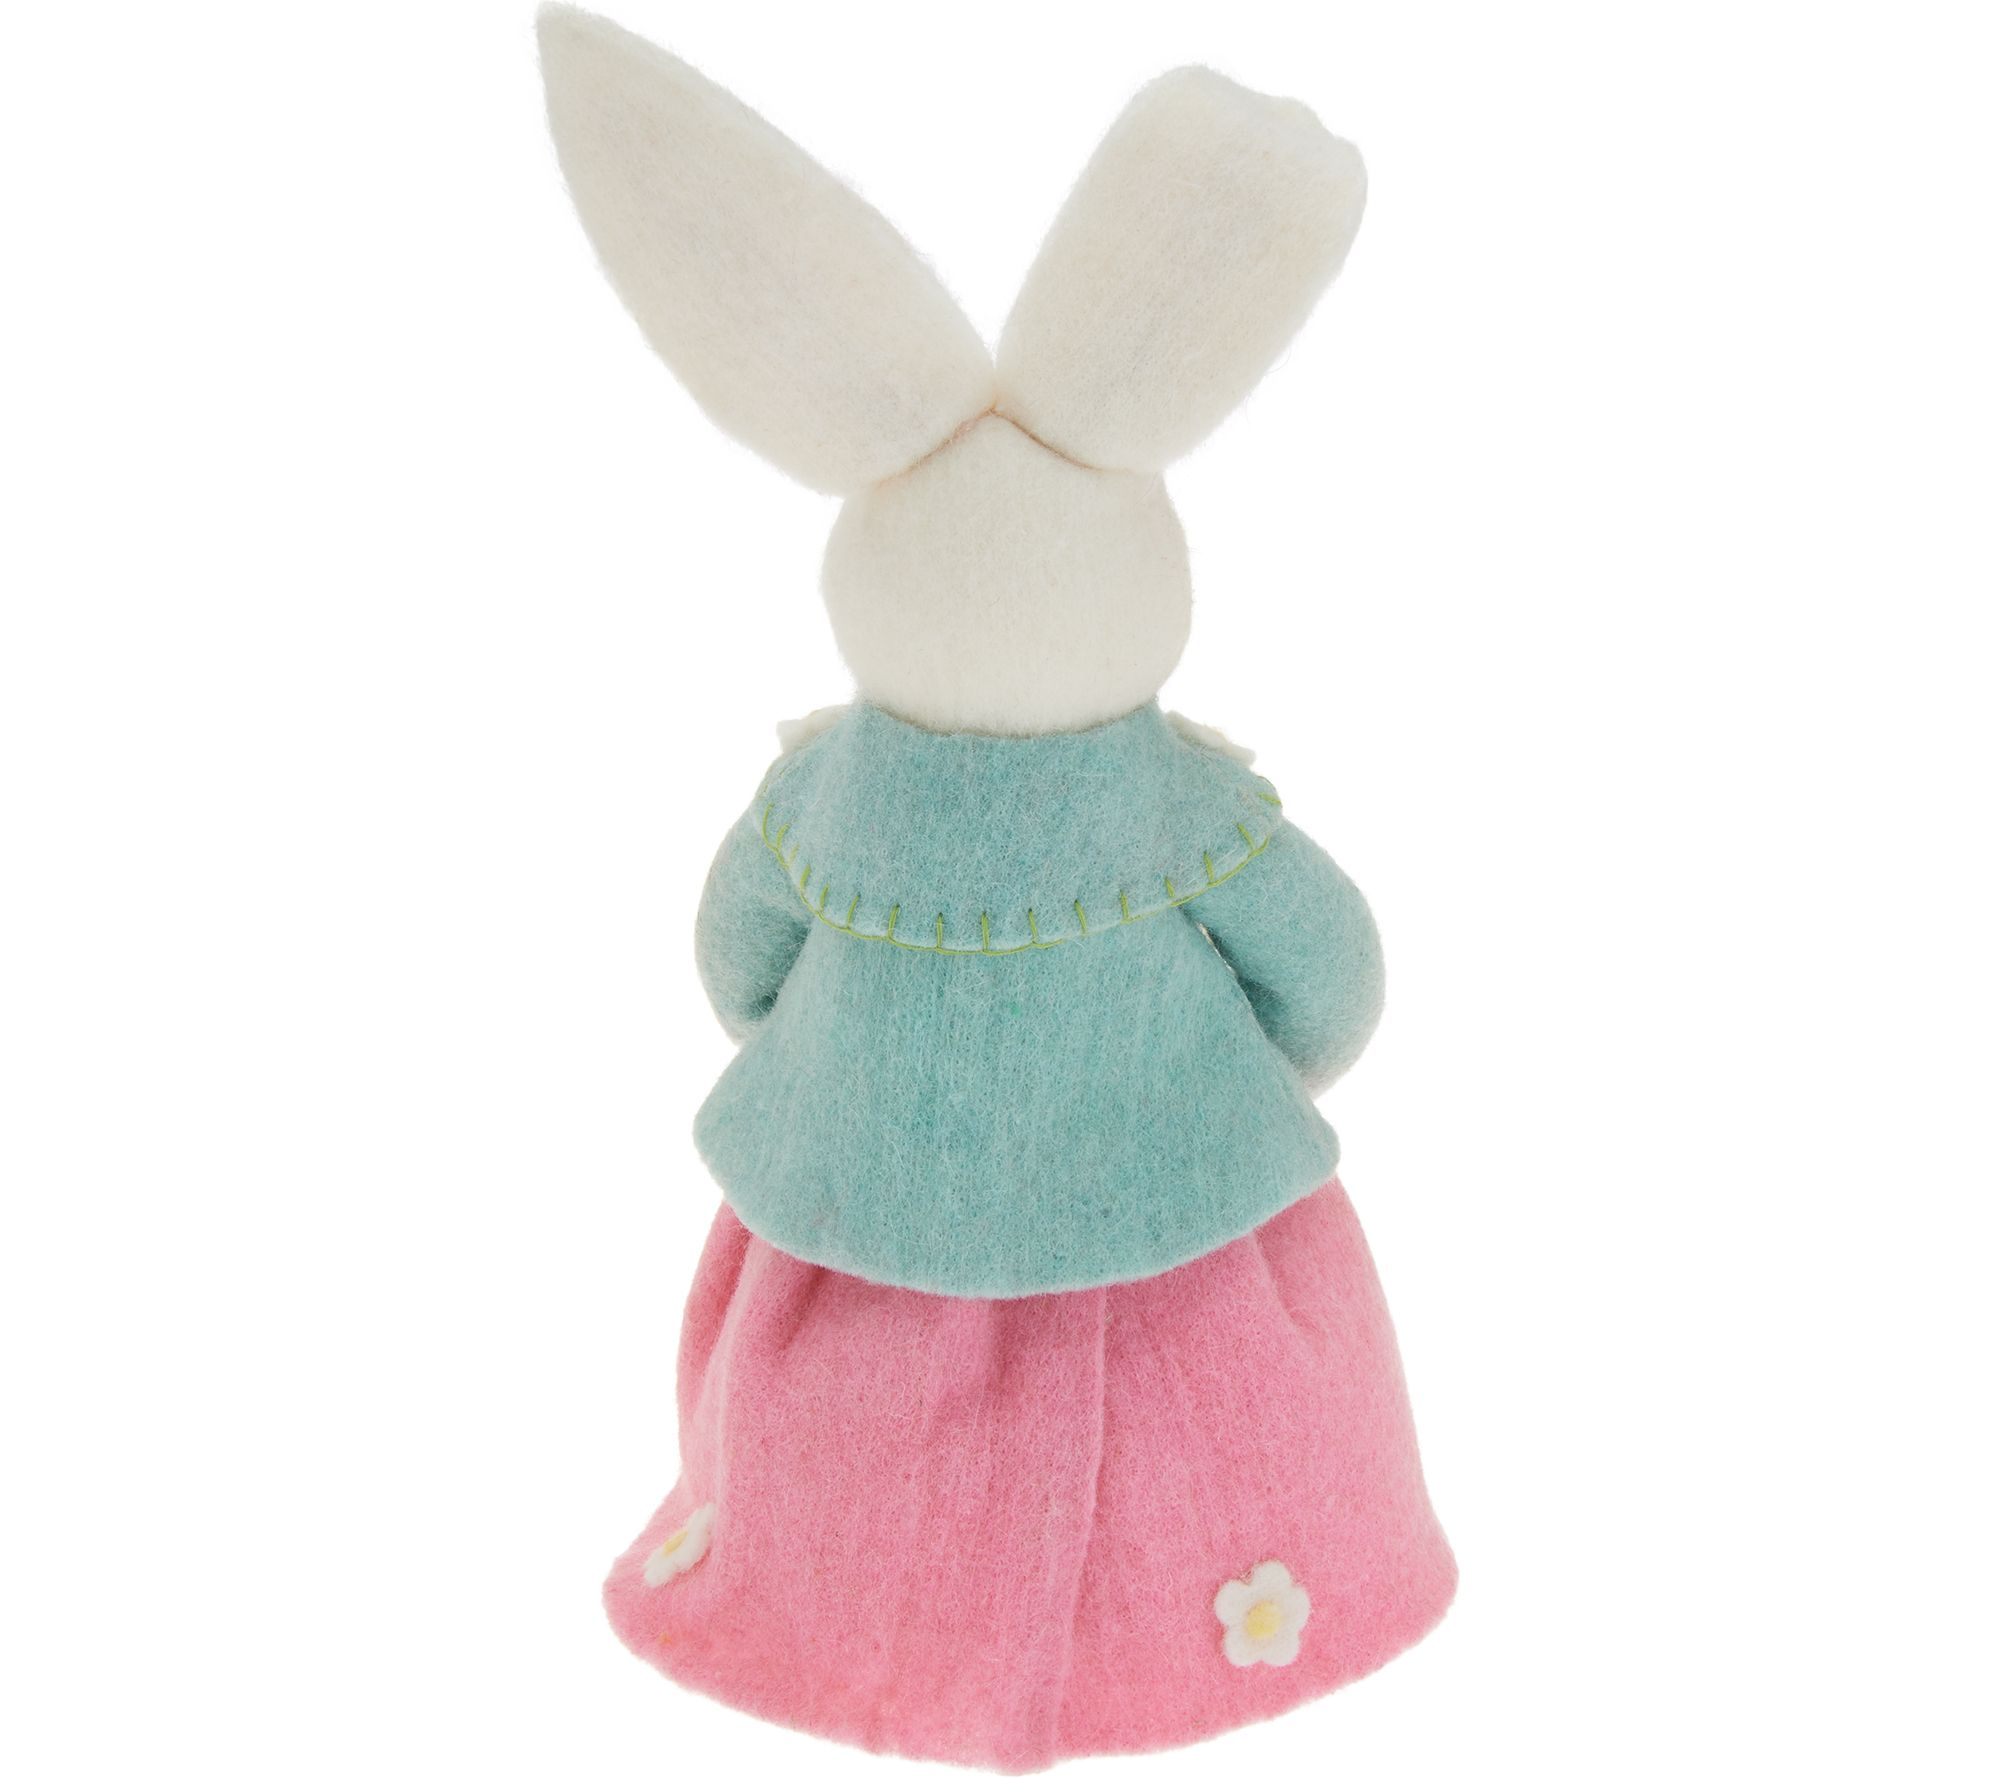 Boiled Wool Bunny Couple Spring-Summer Figures QVC Valerie Parr Hill Home Decor